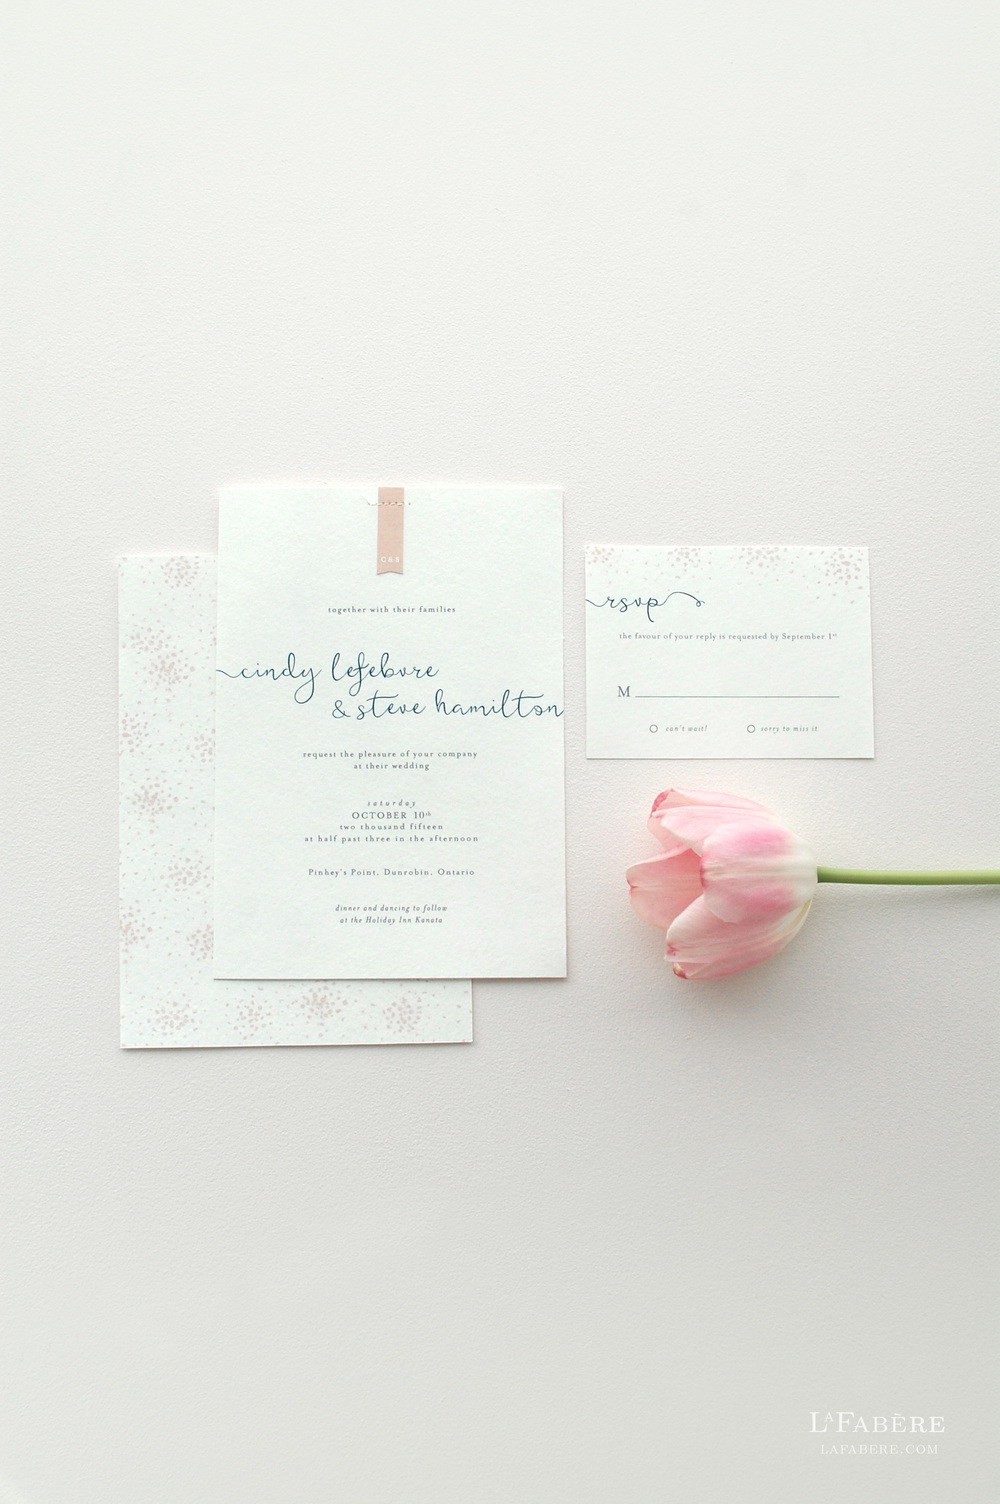 Delicate & Whimsical wedding invitation design by LaFabère. lafabere.com